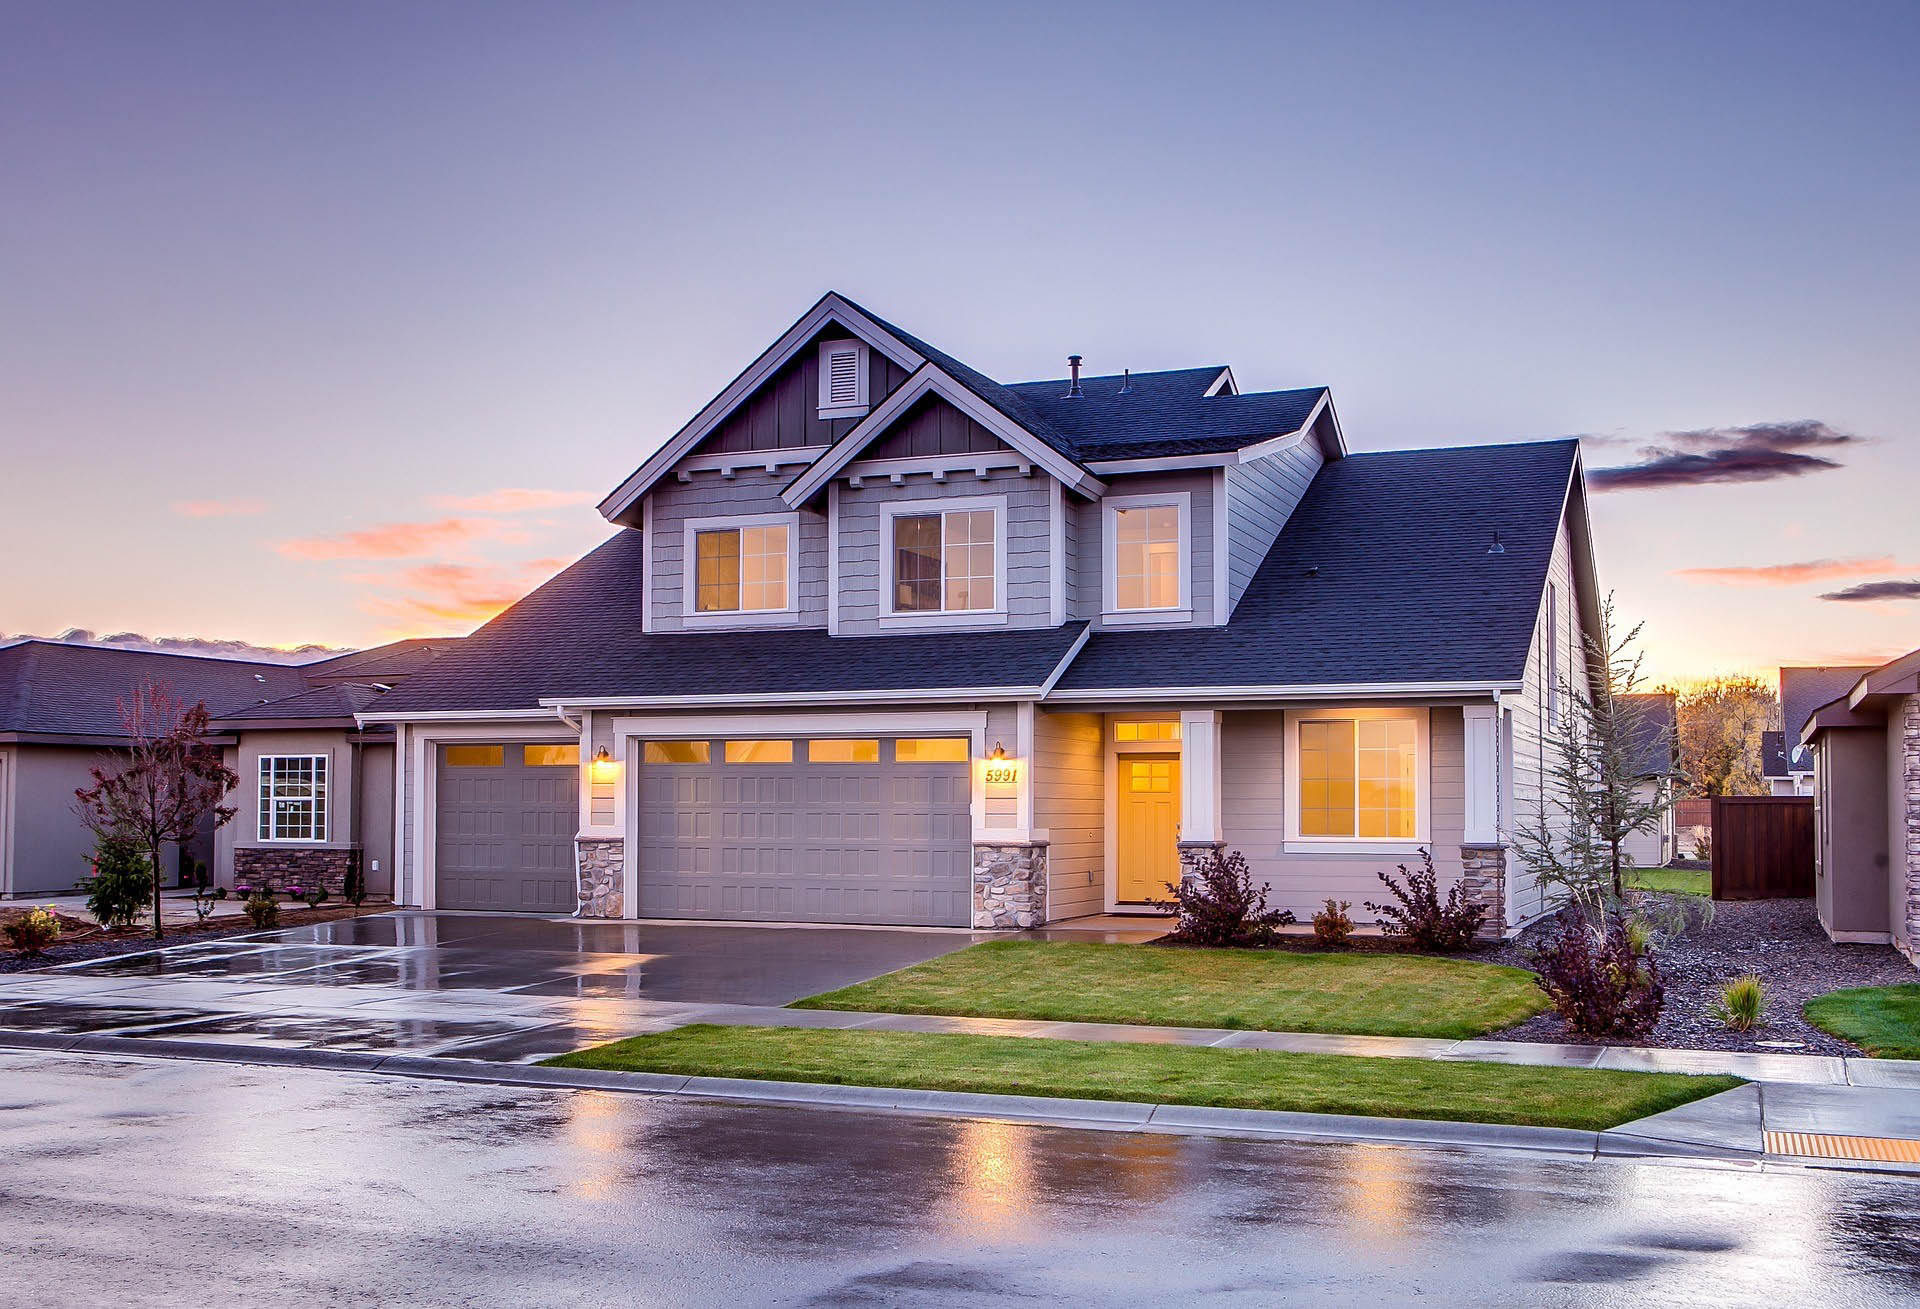 When Should You Buy a Home?